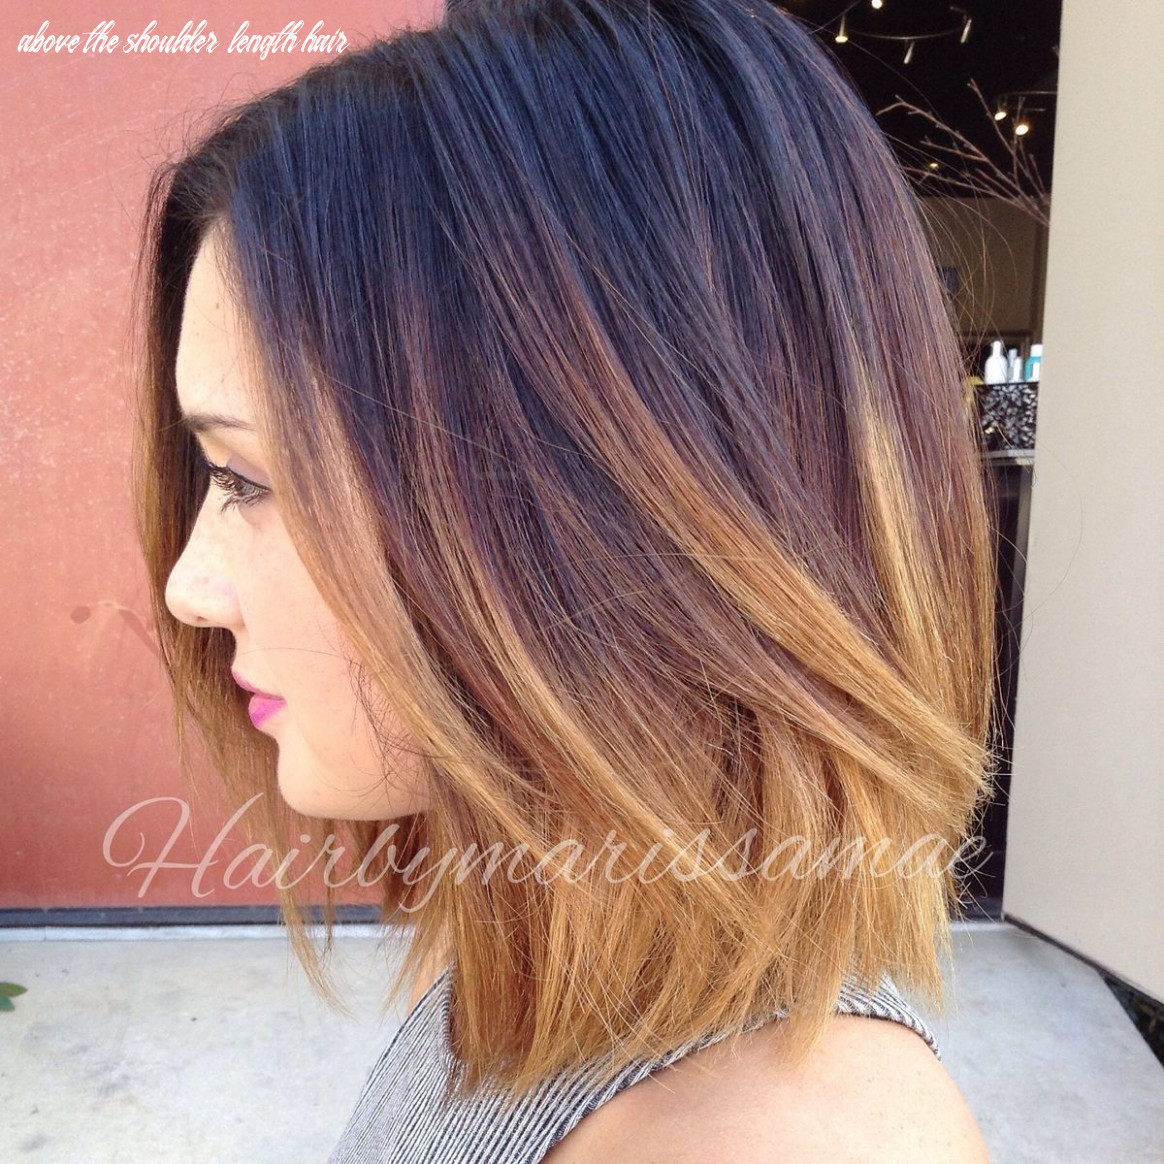 Pin on one length above shoulders above the shoulder length hair